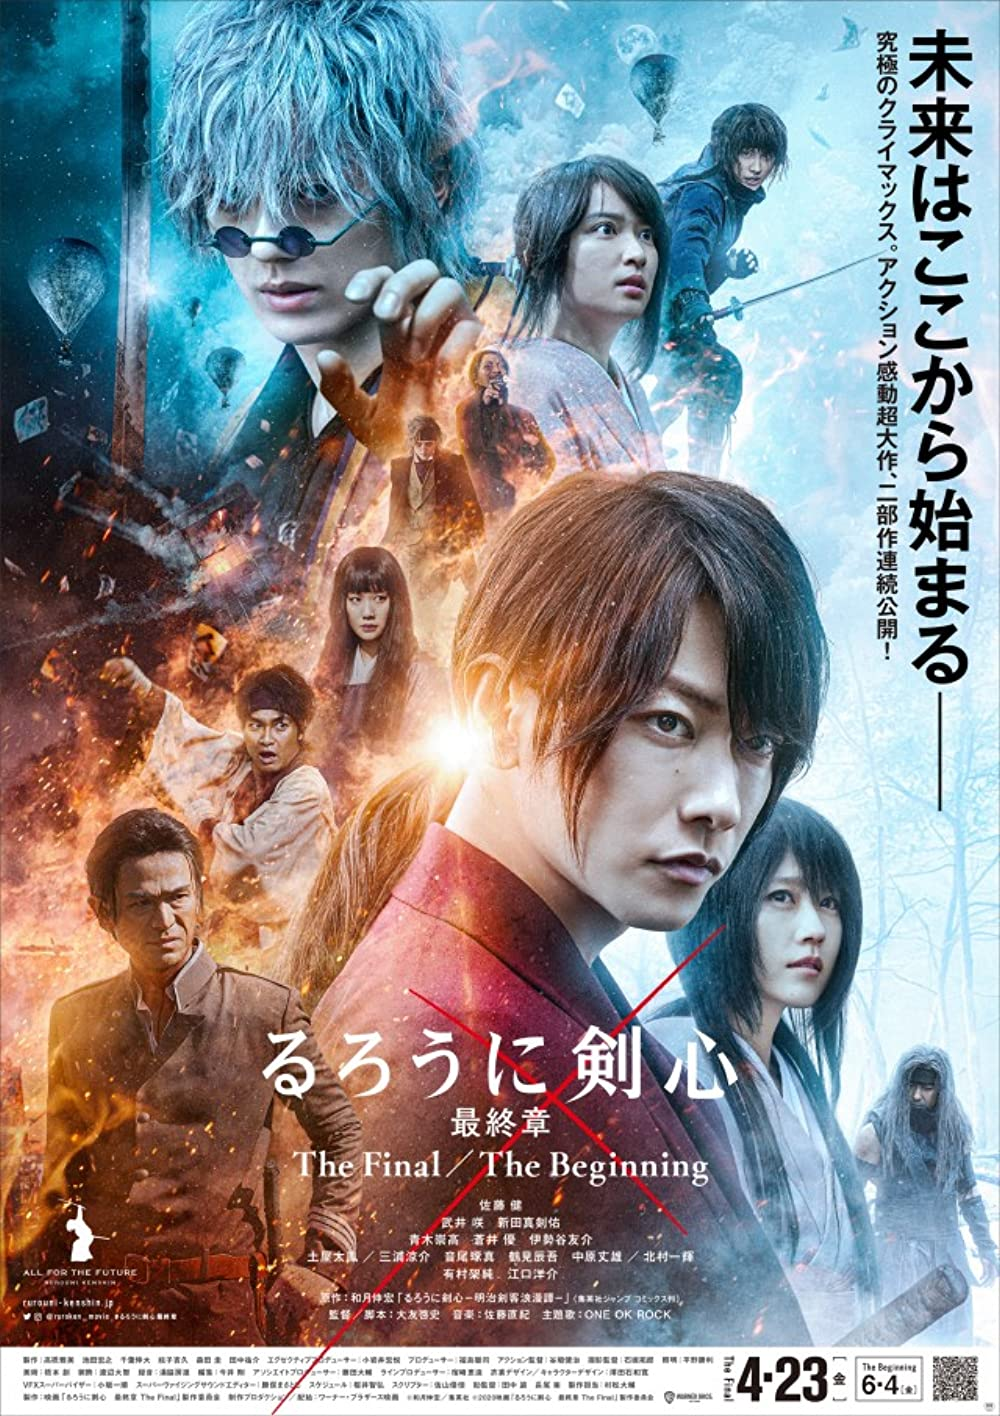 Rurouni Kenshin The Final 2021 Japanese 480p WEB-DL 500MB With Subtitles